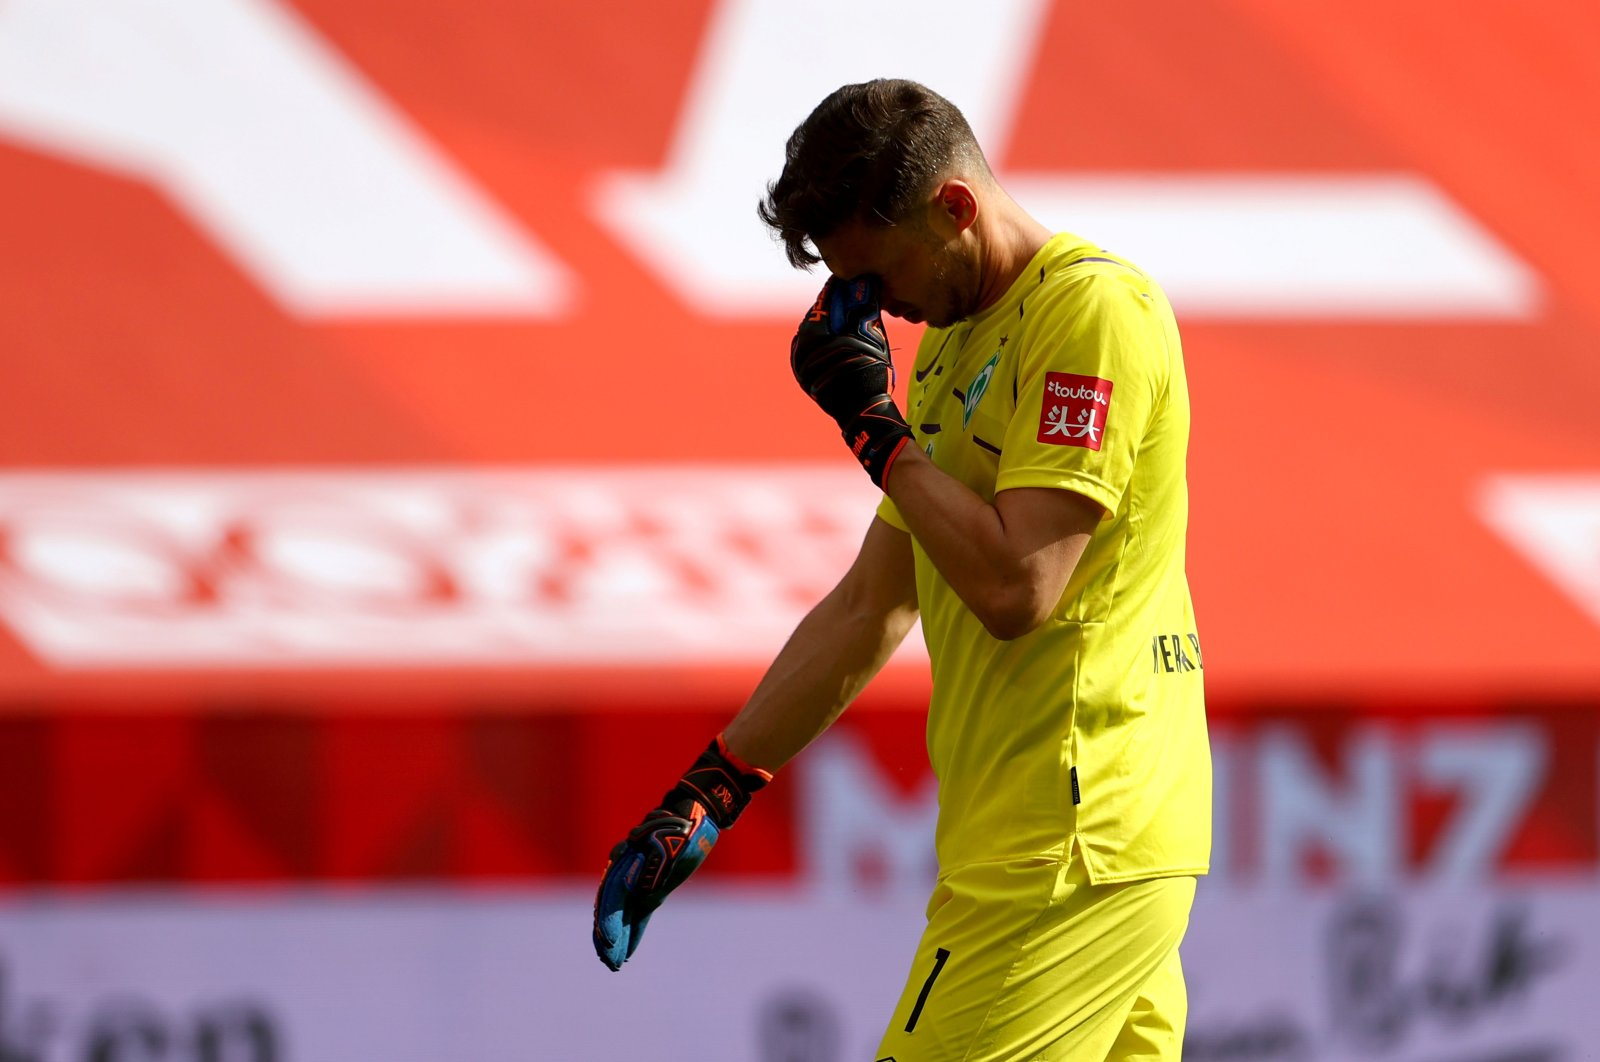 Bremen's Jiri Pavlenka reacts at the end of the match against Mainz, in Mainz, Germany, June 20, 2020. (AFP Photo)